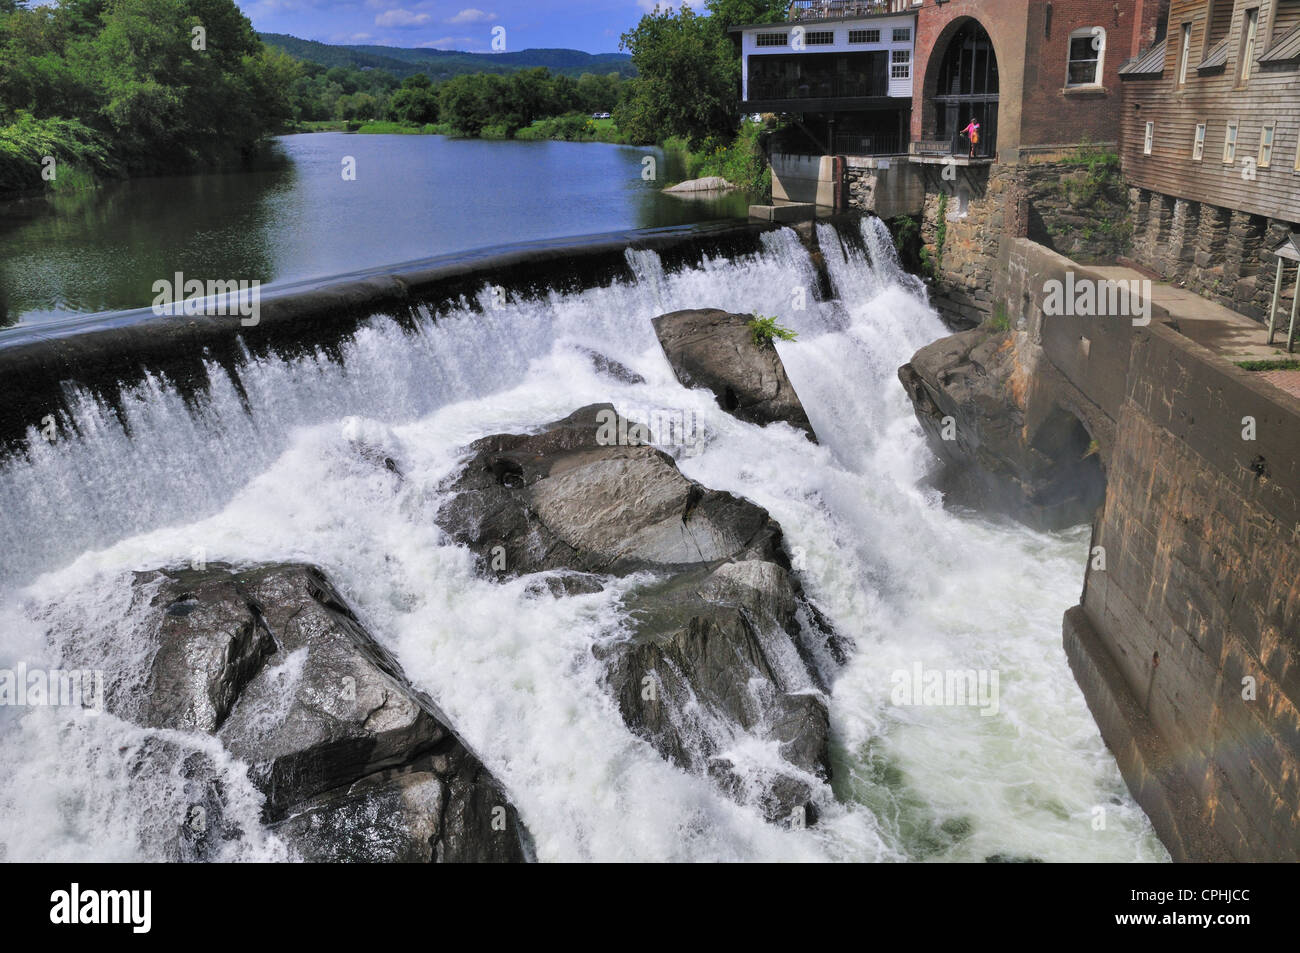 Water races over the Quechee dam and crashes on the boulders downstream - Stock Image